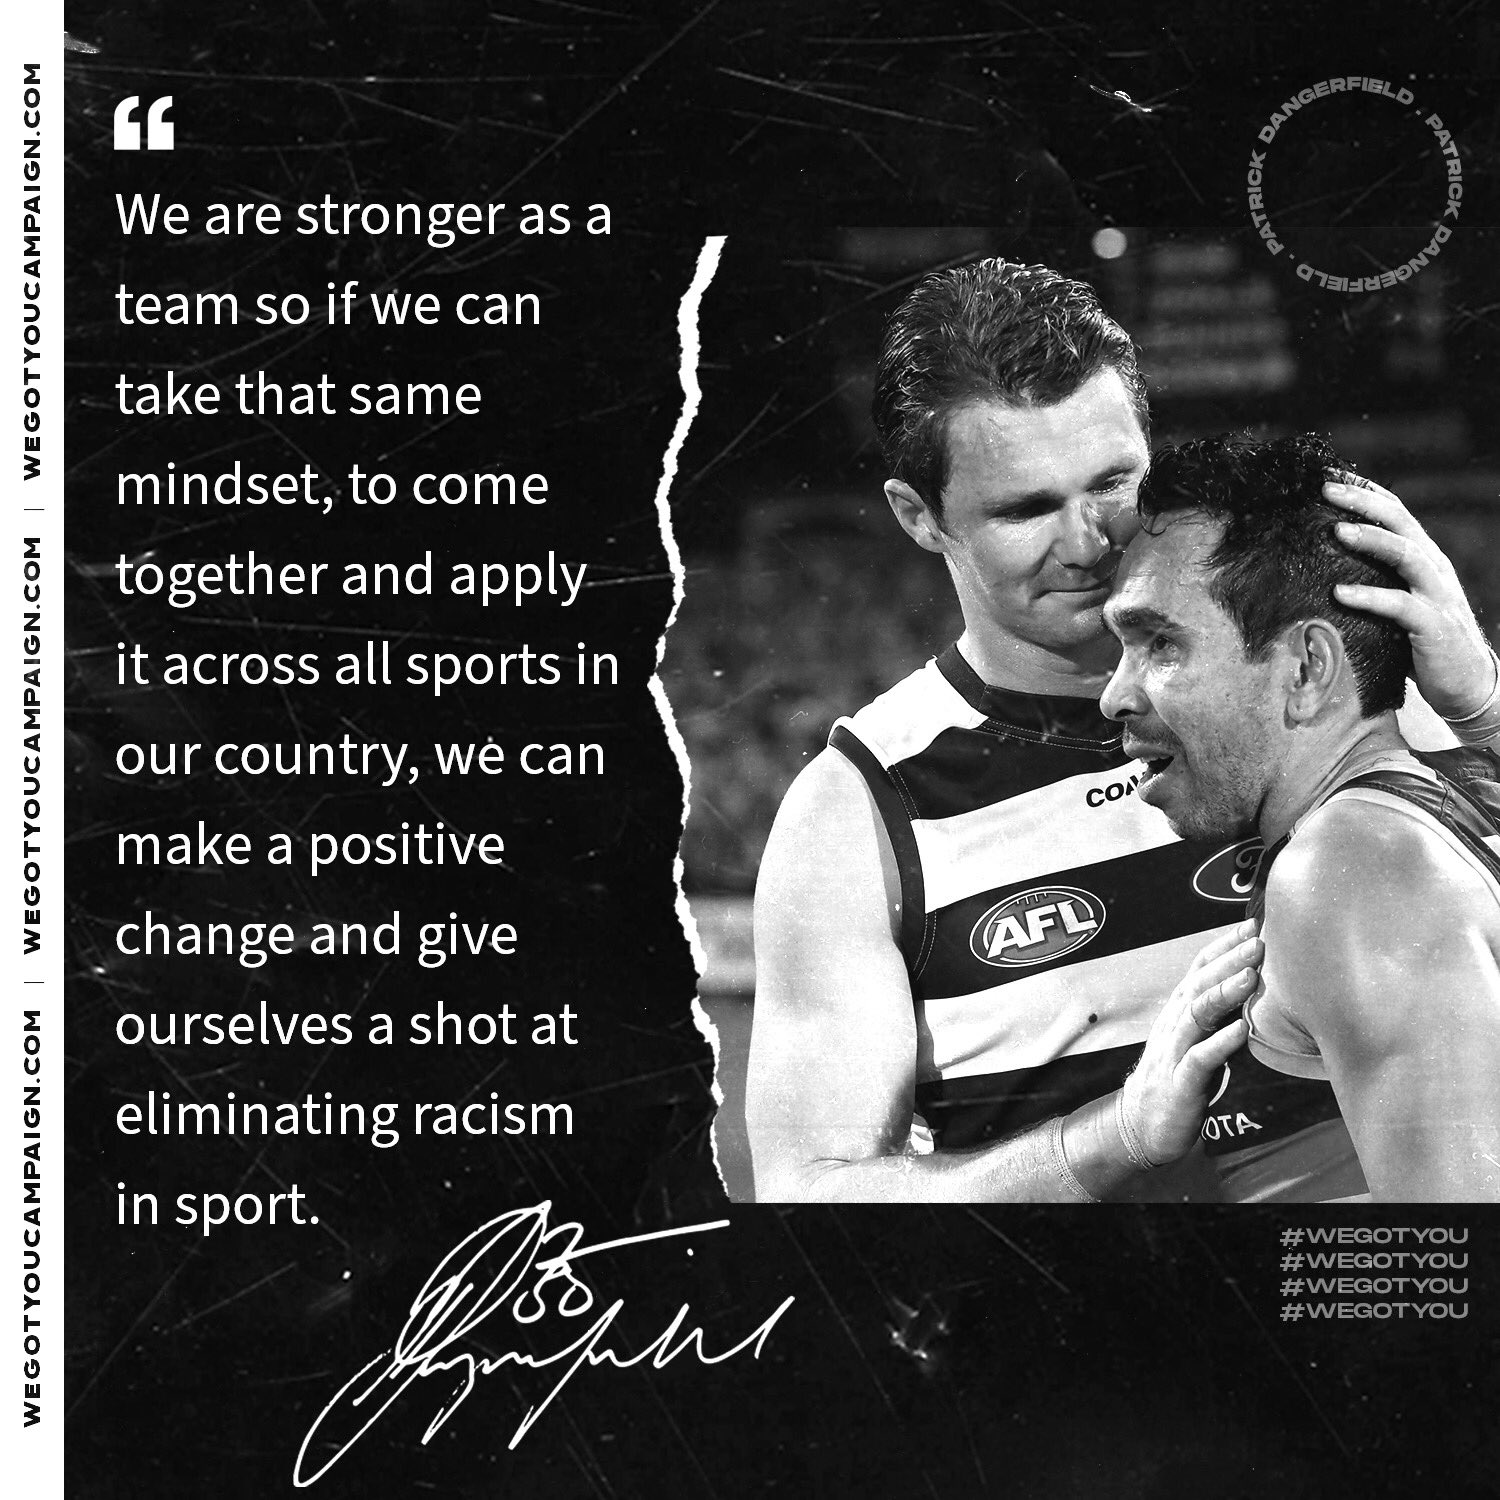 When allies who stand up and speak out against racism, although a small gesture, this is one of many actions that have a tremendous impact on the person being targeted because they feel the support. It can also make whoever racially vilifies that person reconsider own behavior. https://t.co/MqH3Fc1CqX